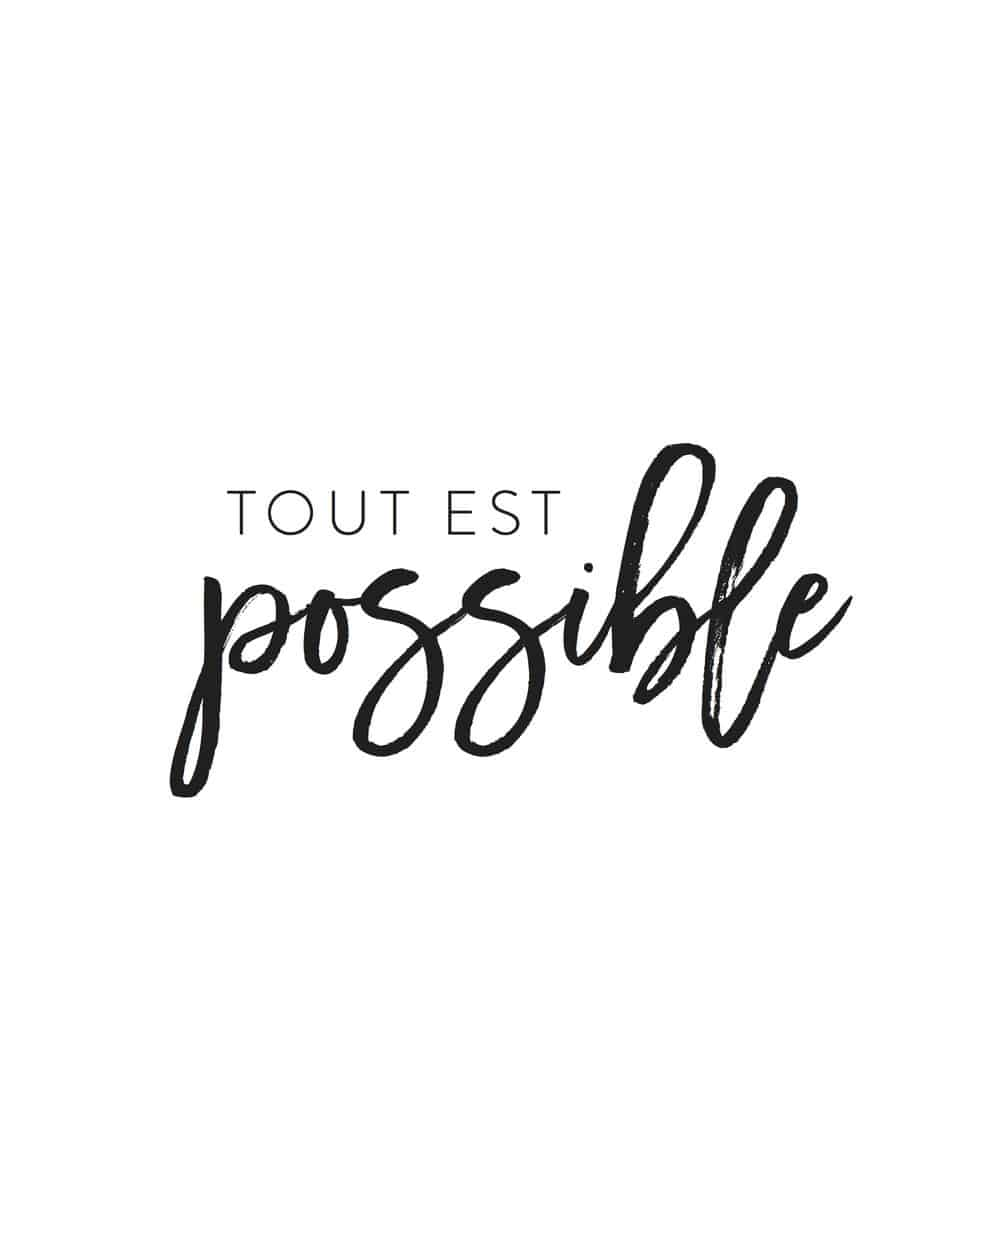 all is possible tout est possible by rebecca plotnick